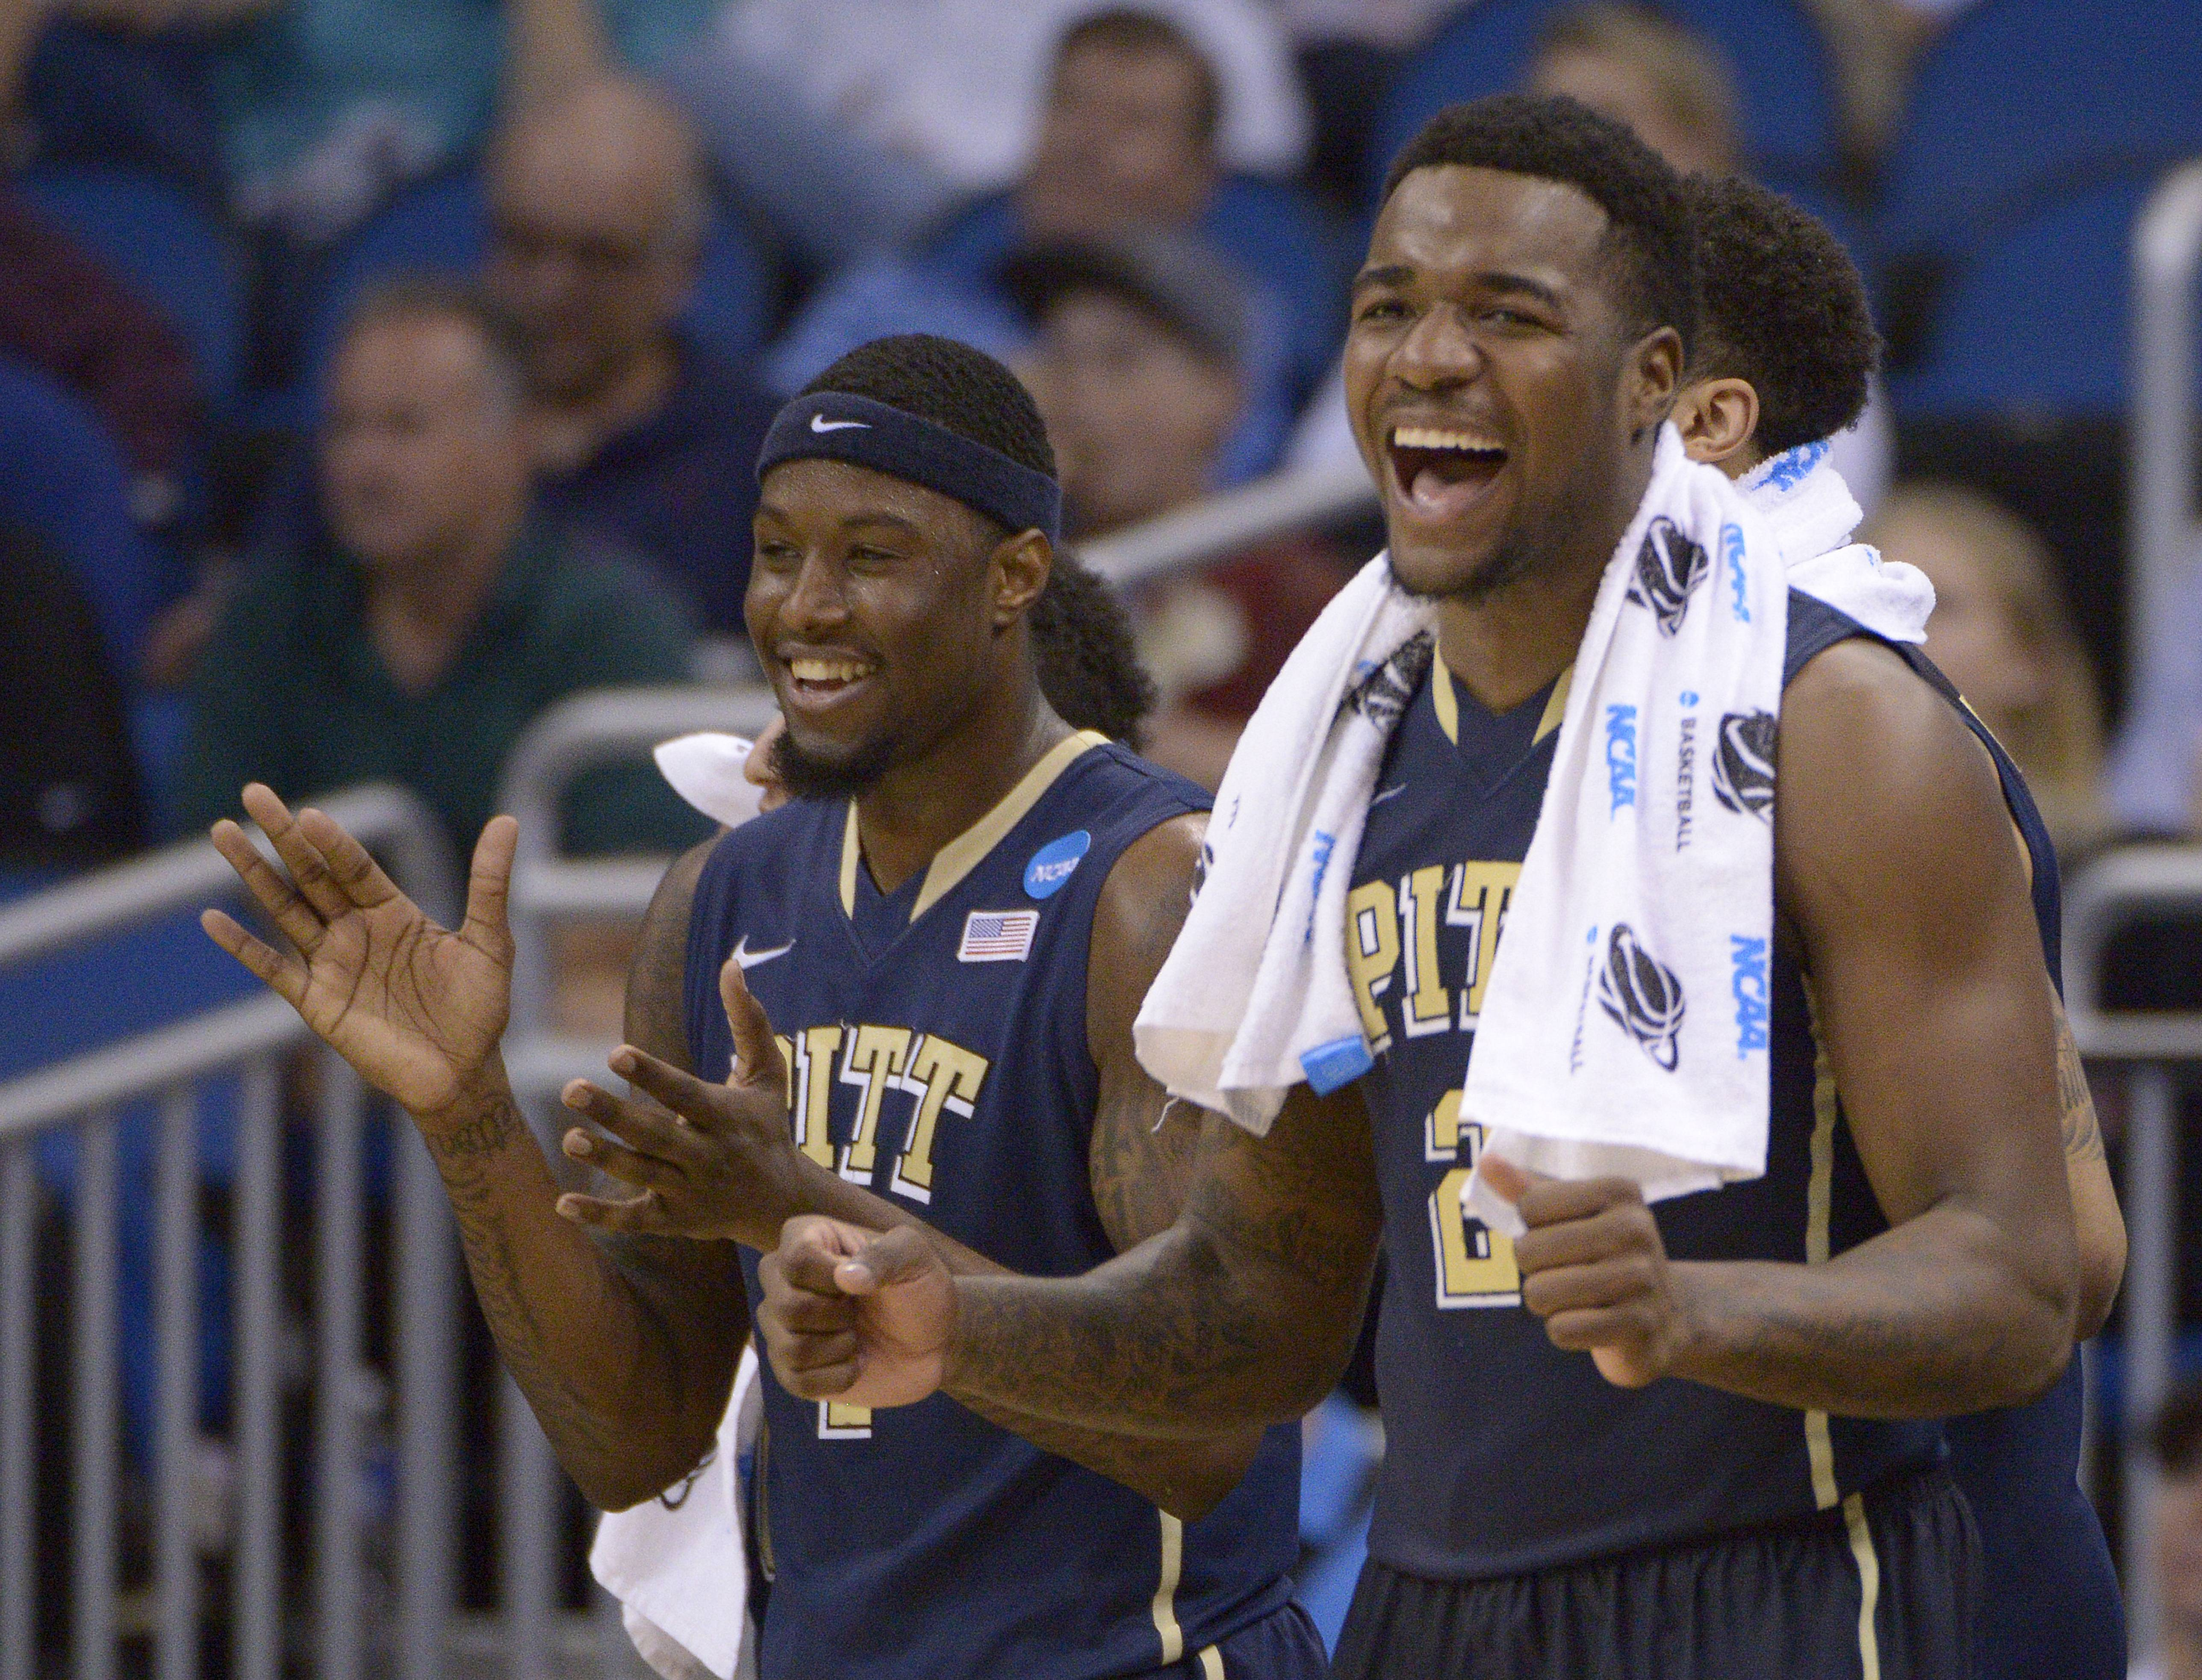 Pittsburgh forwards Jamel Artis (1) and Michael Young (2) celebrate their team's 77-48 victory over Colorado in a second-round game in the NCAA college basketball tournament Thursday, March 20, 2014, in Orlando, Fla.